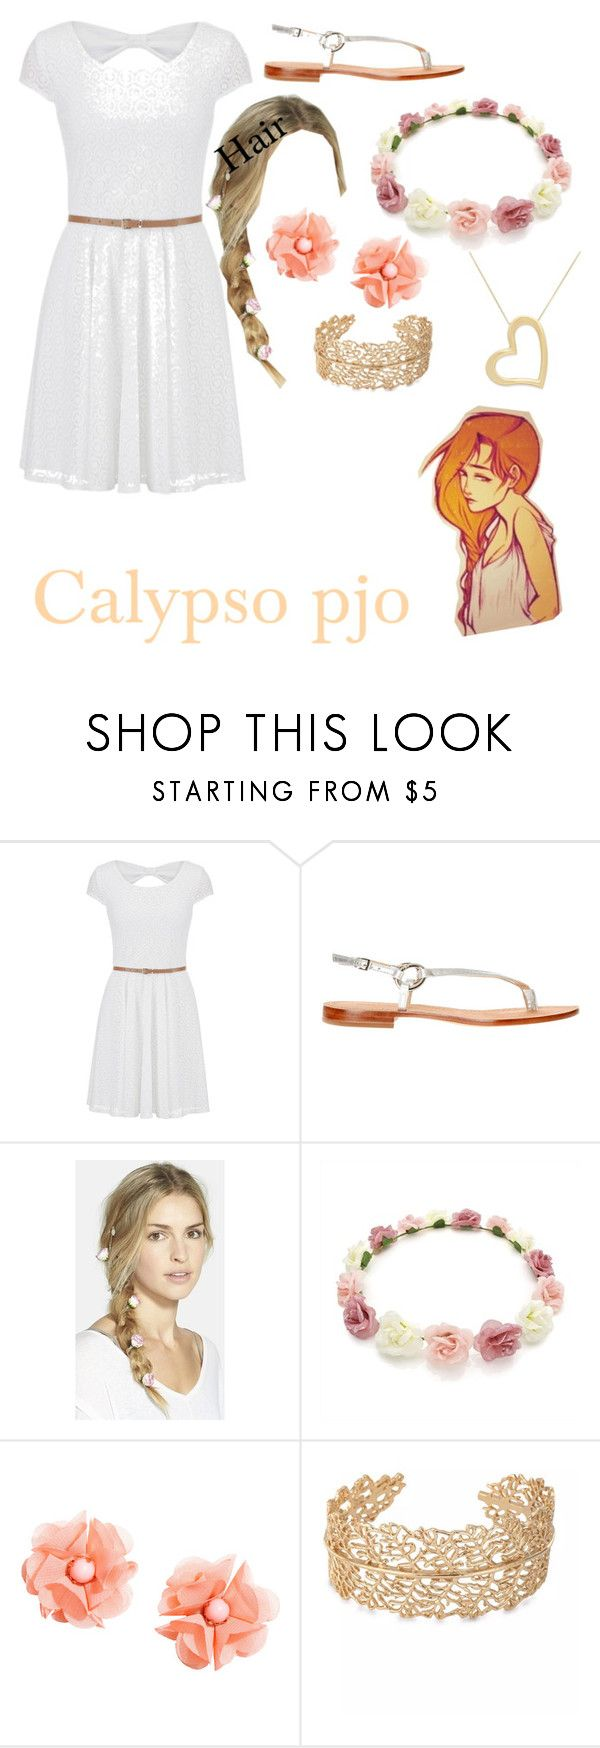 """Calypso (percy jackson series)"" by gglloyd ❤ liked on Polyvore featuring maurices, Diane Von Furstenberg, Berry and H&M"